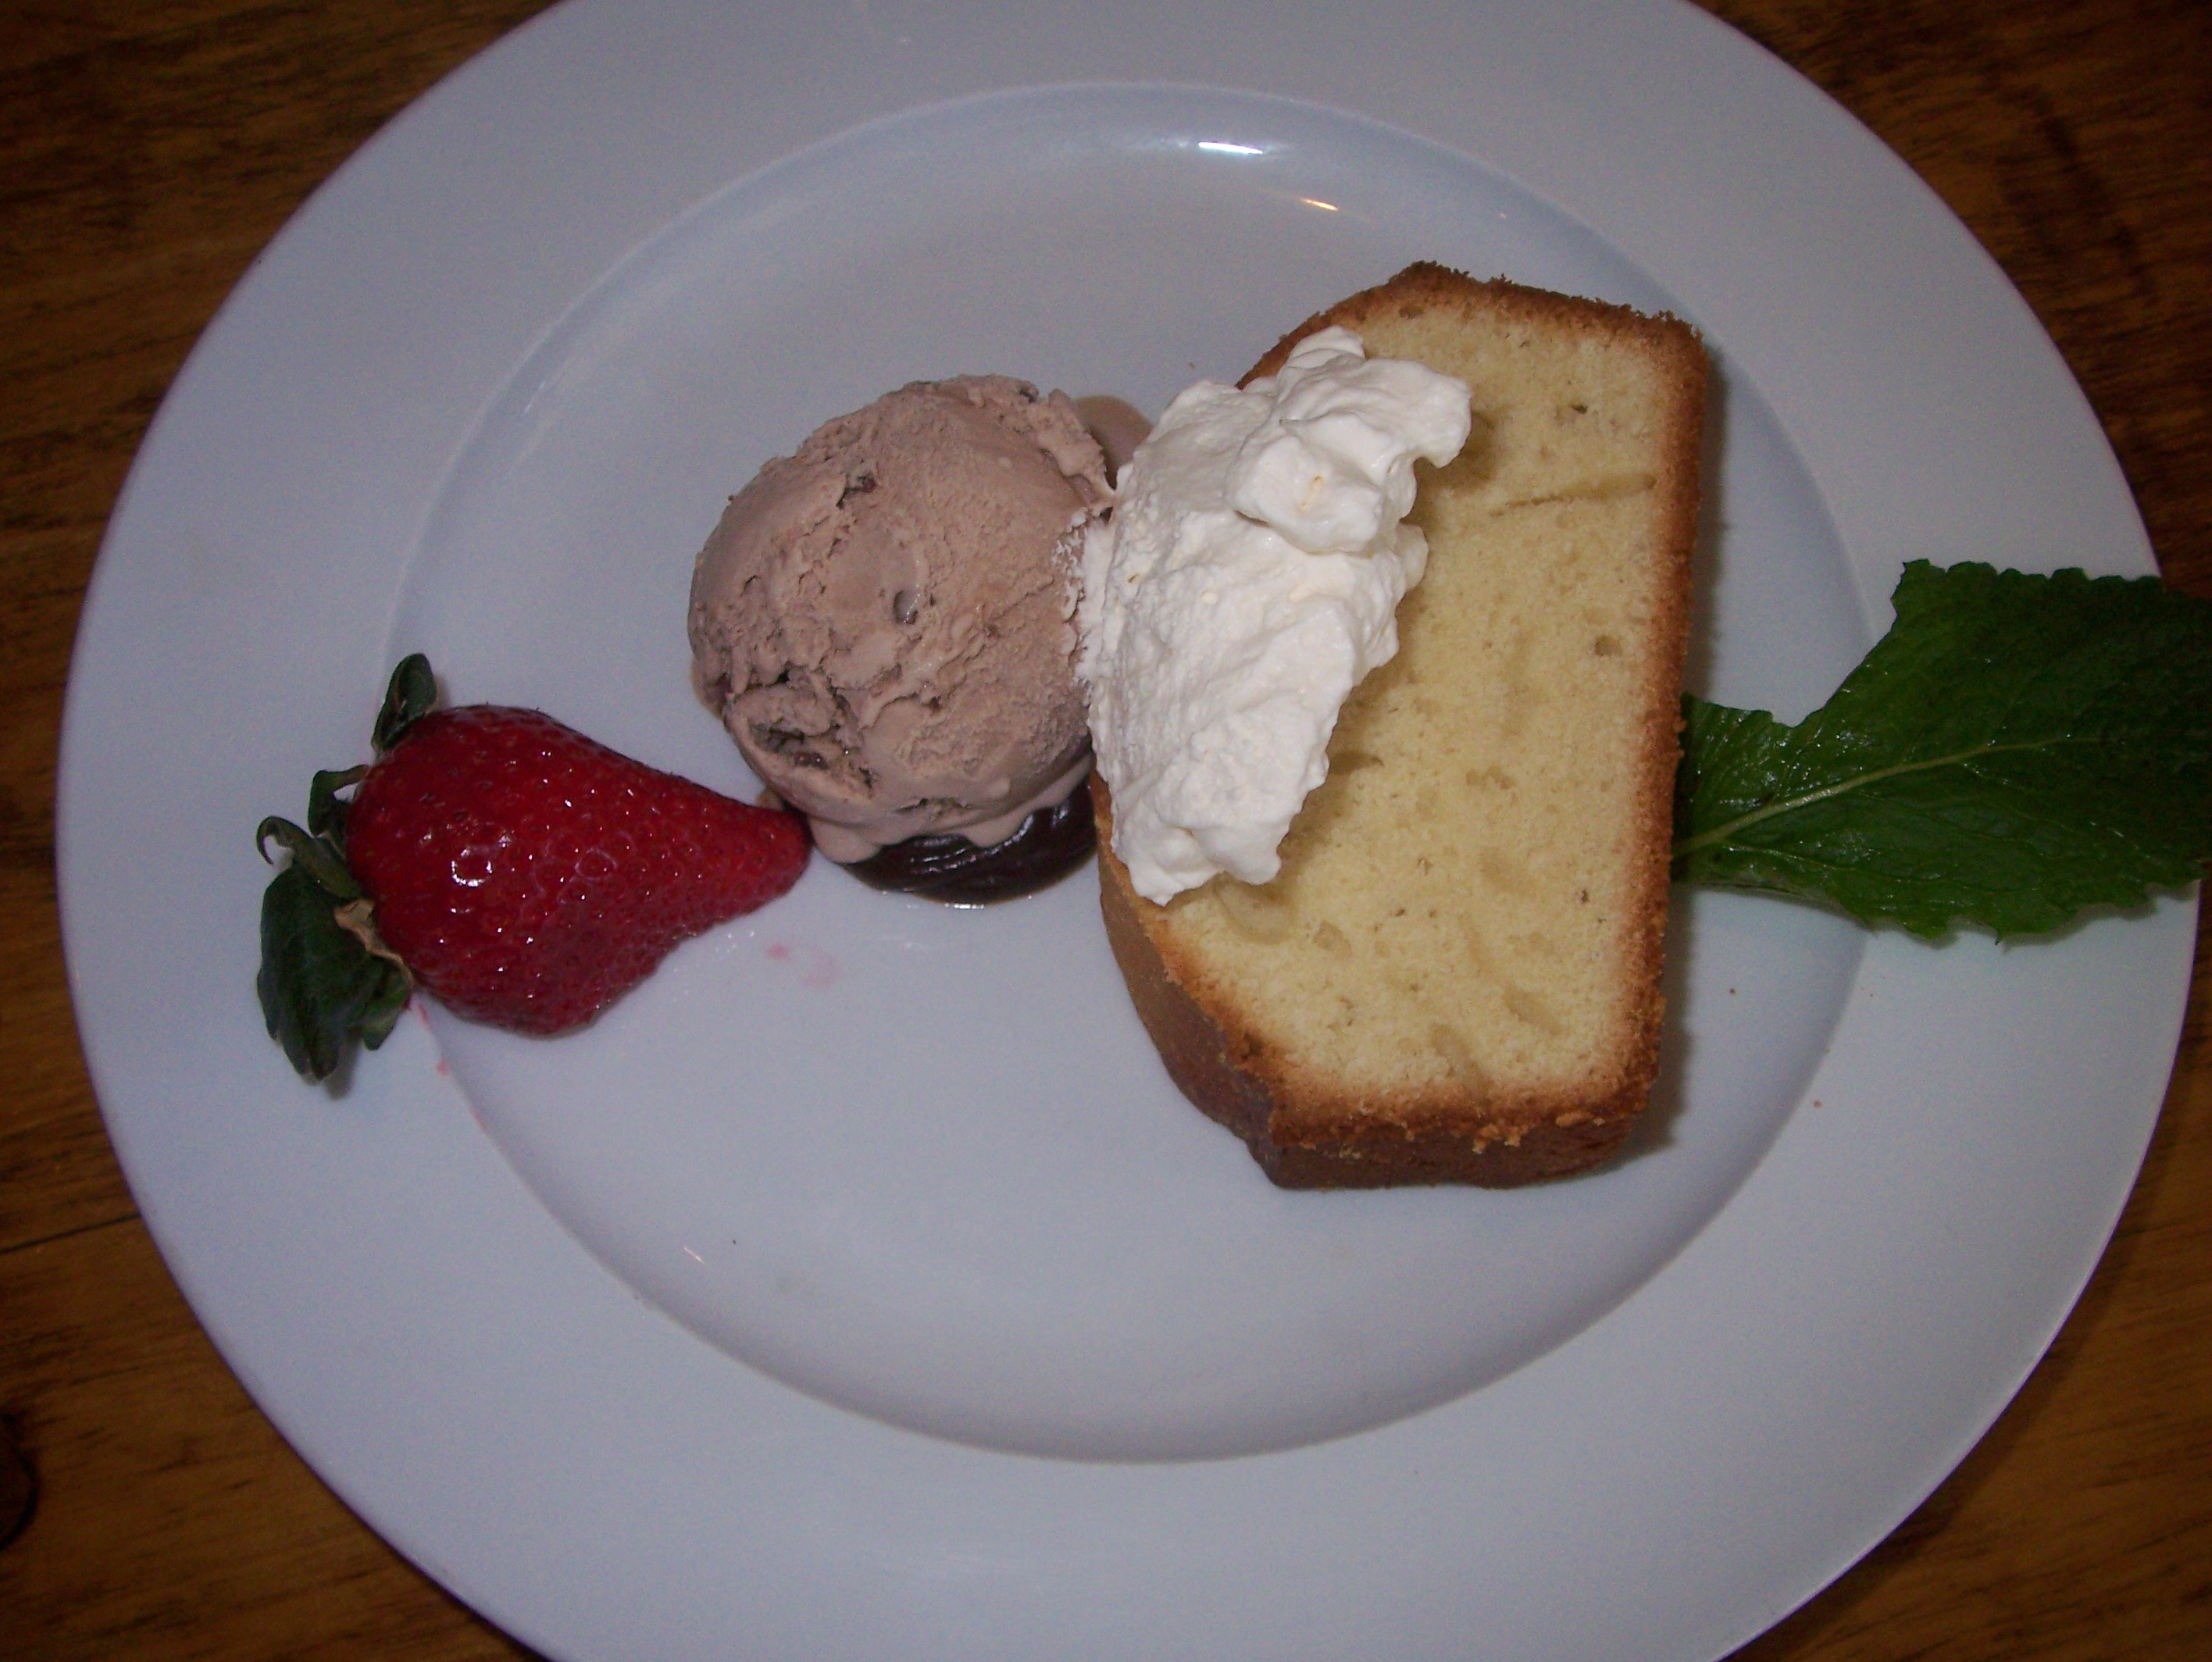 The Captain's Pound Cake & Mr. Shane's Chocolate Malt Ice Cream